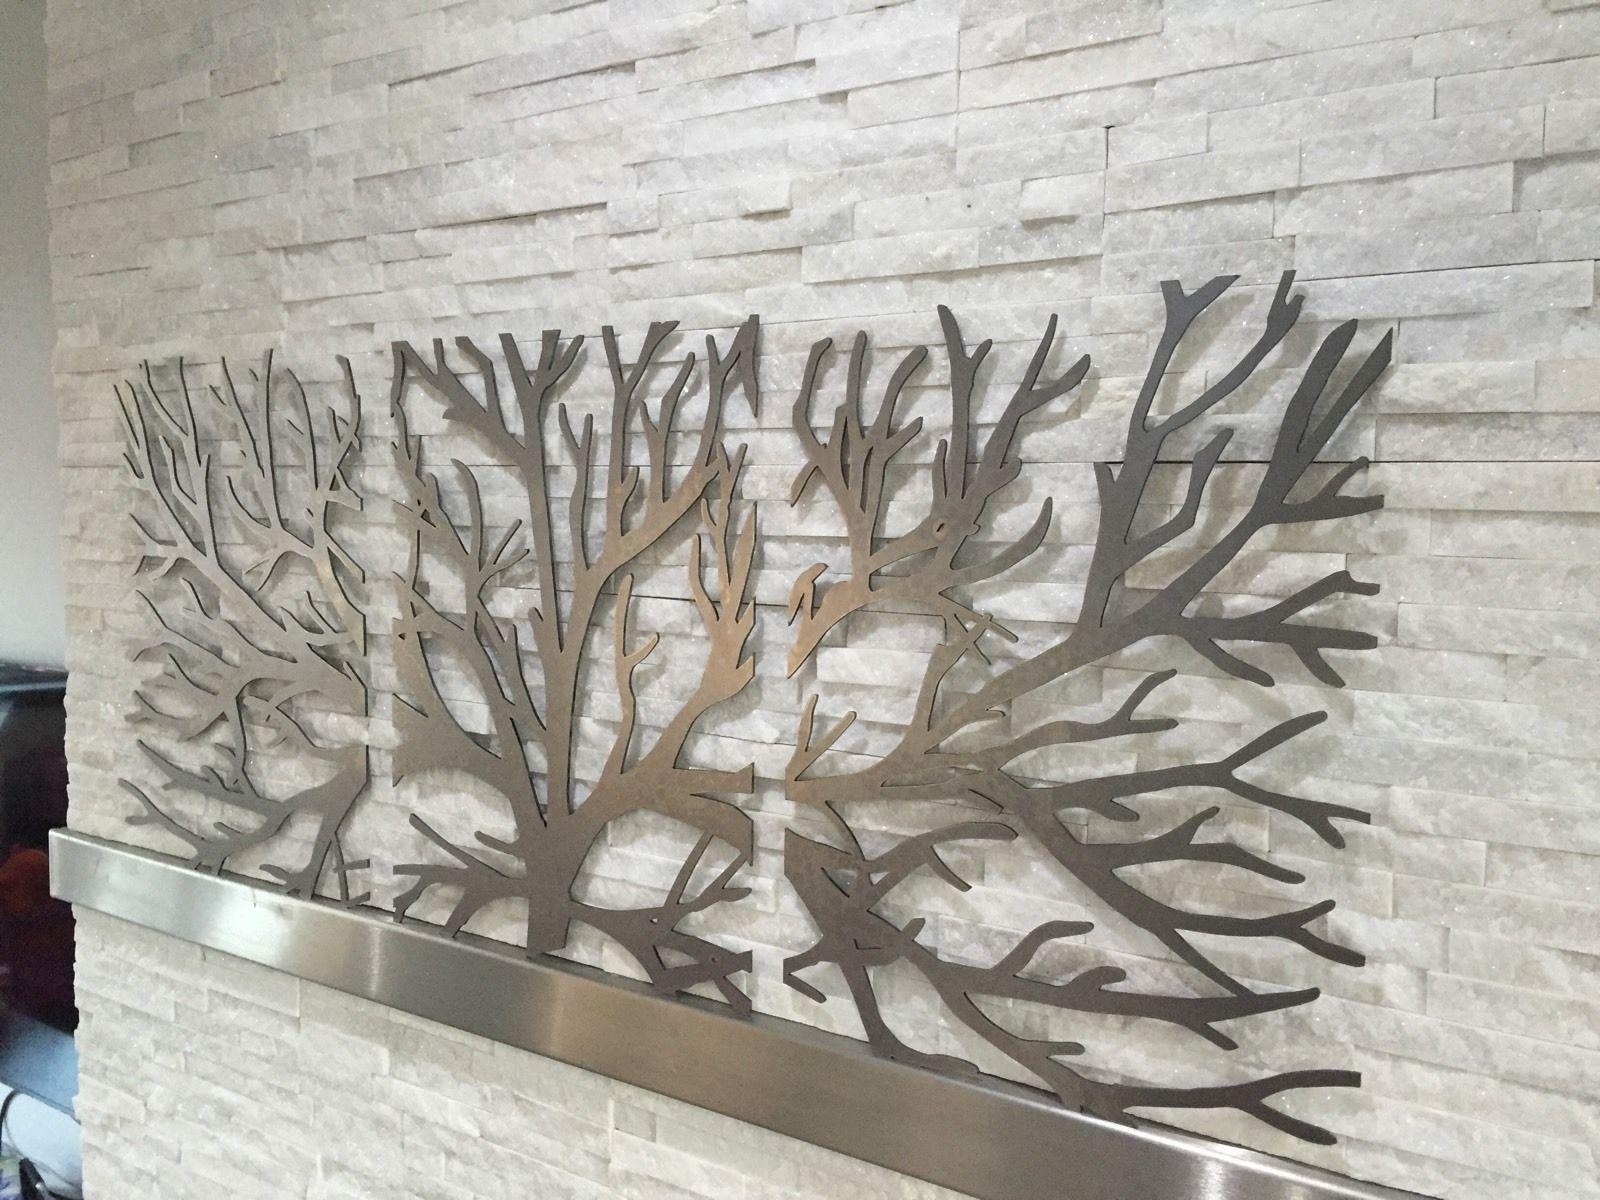 Wall Art 3D Metal Decor | Wallartideas Throughout 3D Metal Wall Art (Image 15 of 20)